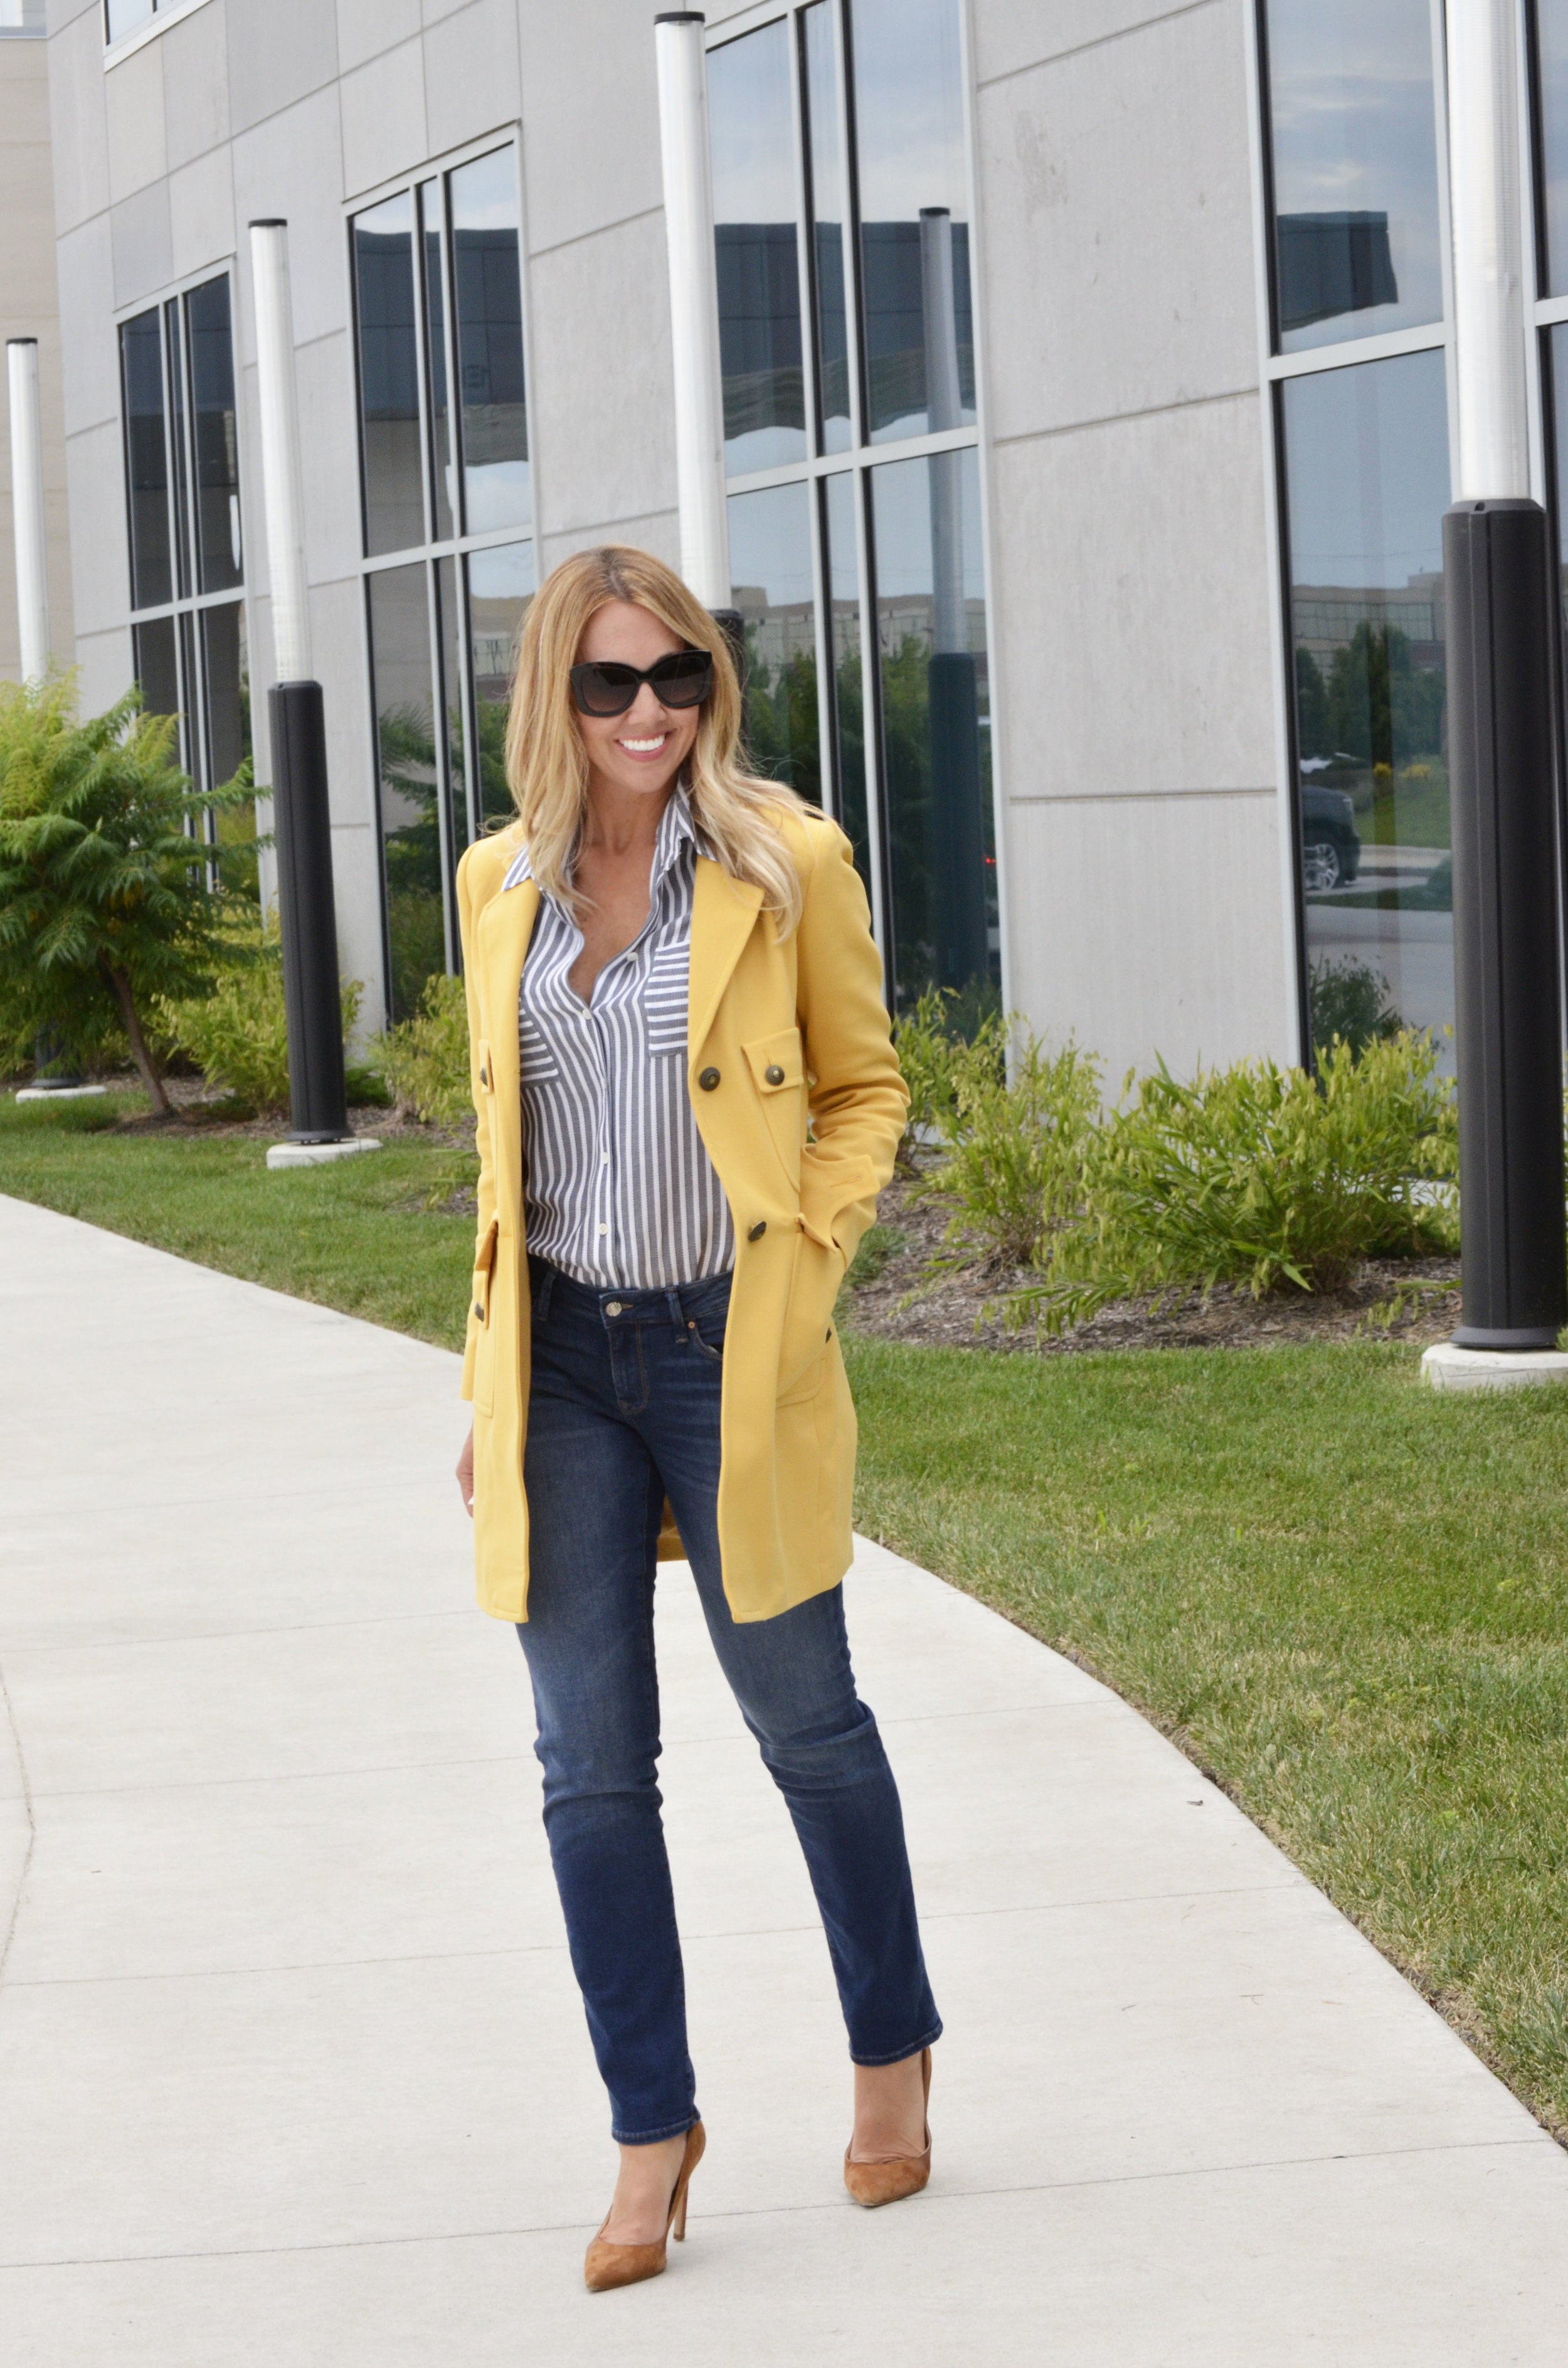 The Stroll saffron-colored coat and striped blouse